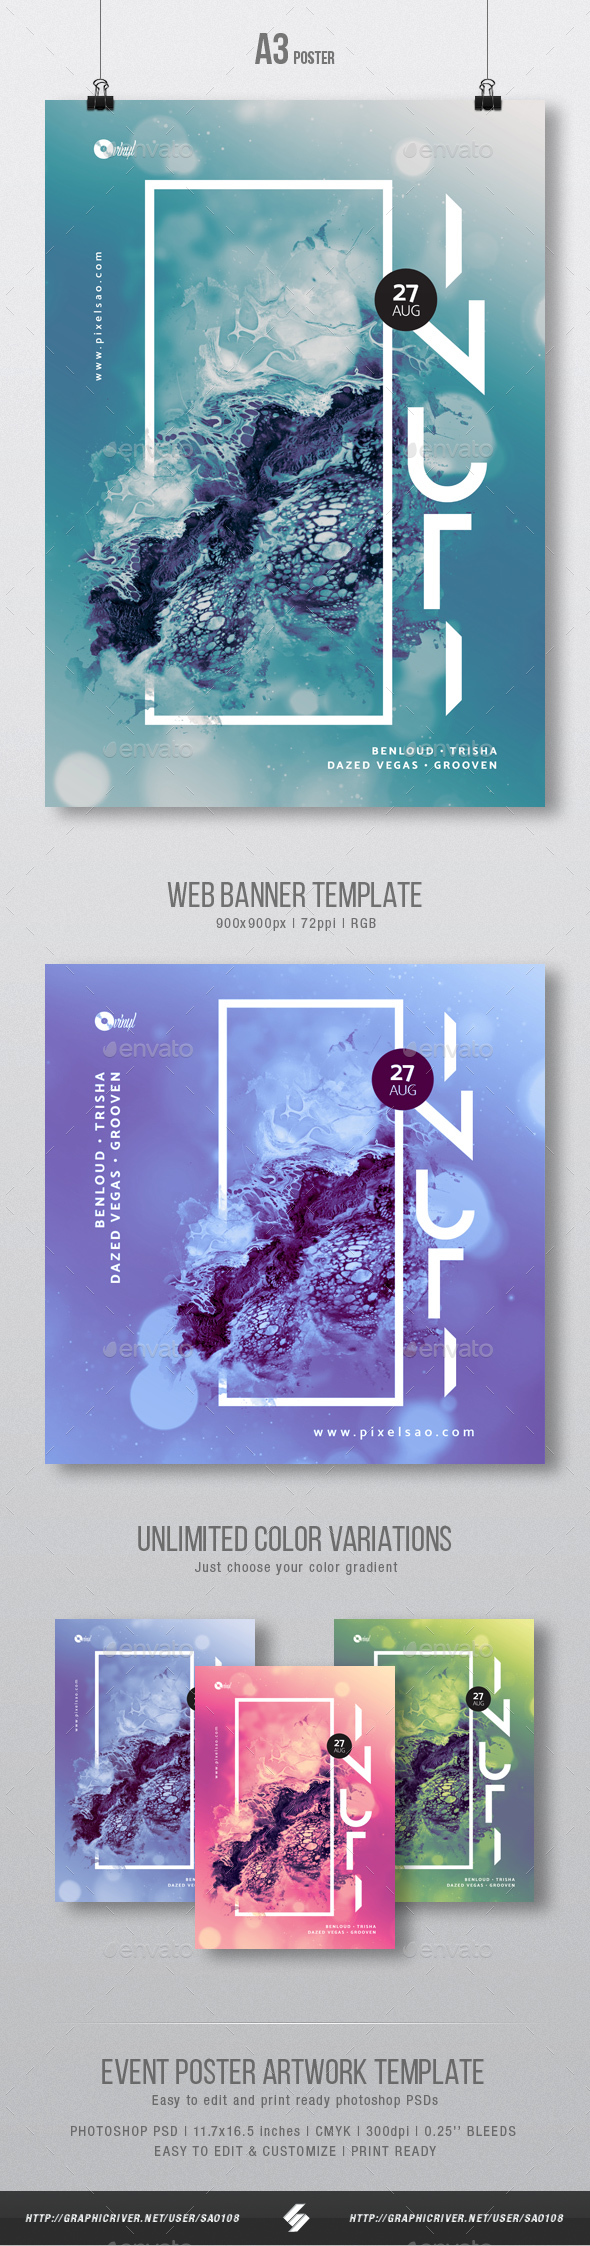 Inuti - Abstract Party Flyer / Poster Artwork Template A3 - Clubs & Parties Events